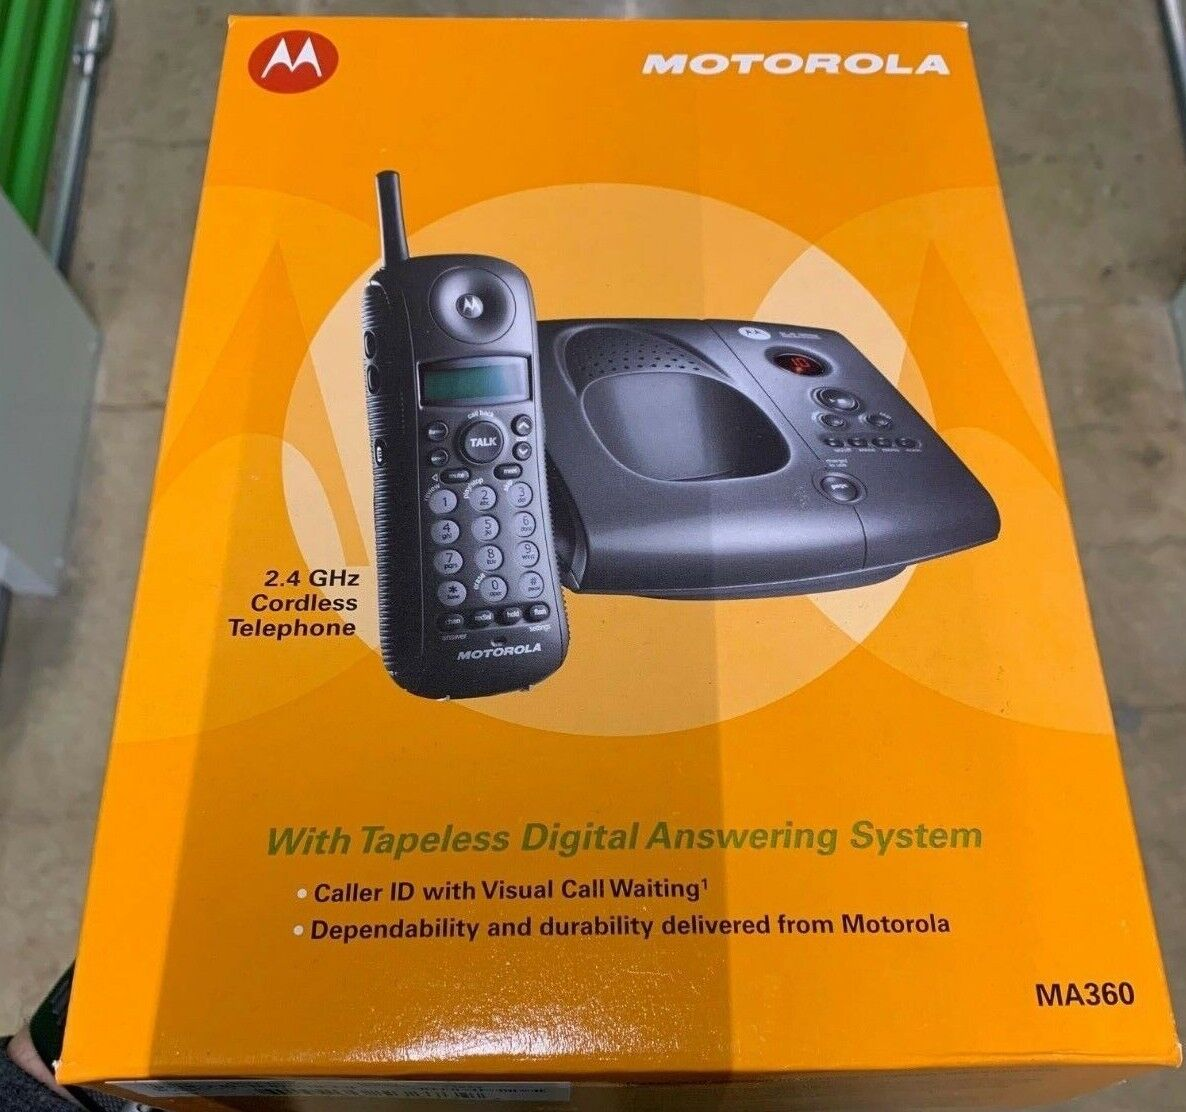 Motorola MA360 2.4GHz Cordless Home Telephone With Digital A